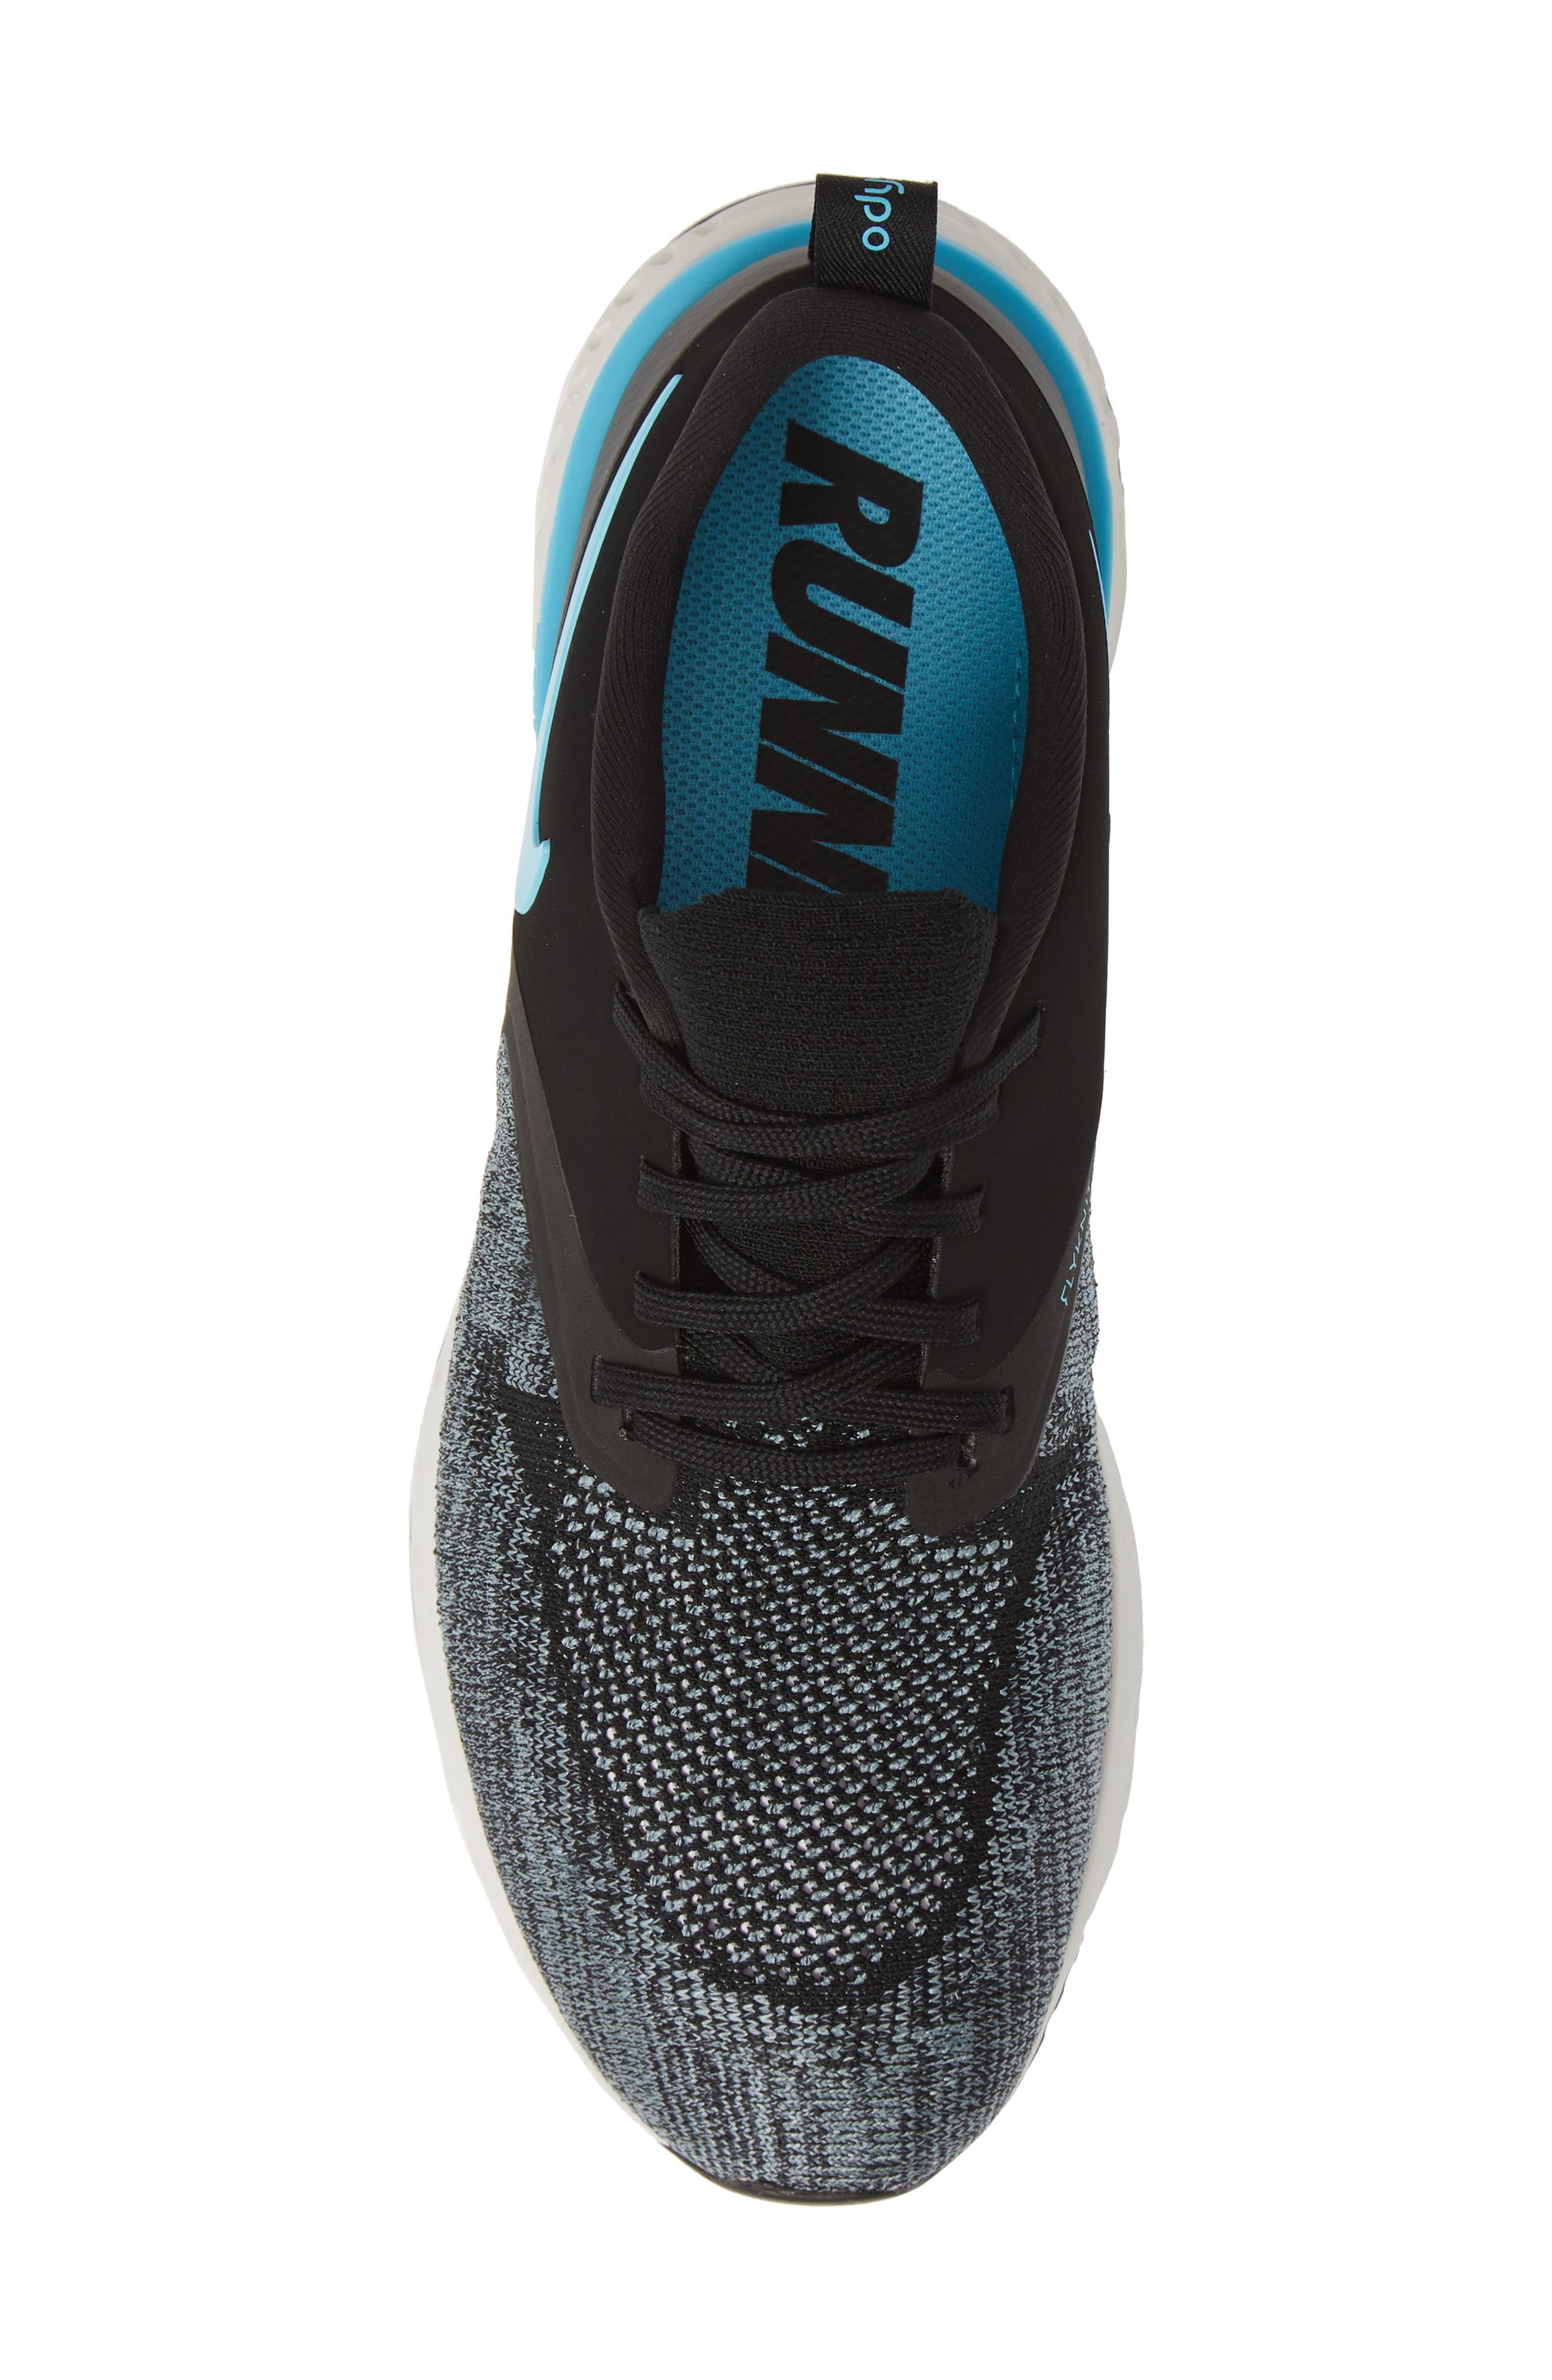 NIKE,                             Odyssey React 2 Flyknit Running Shoe,                             Alternate thumbnail 5, color,                             BLACK/ BLUE FURY/ AVIATOR GREY